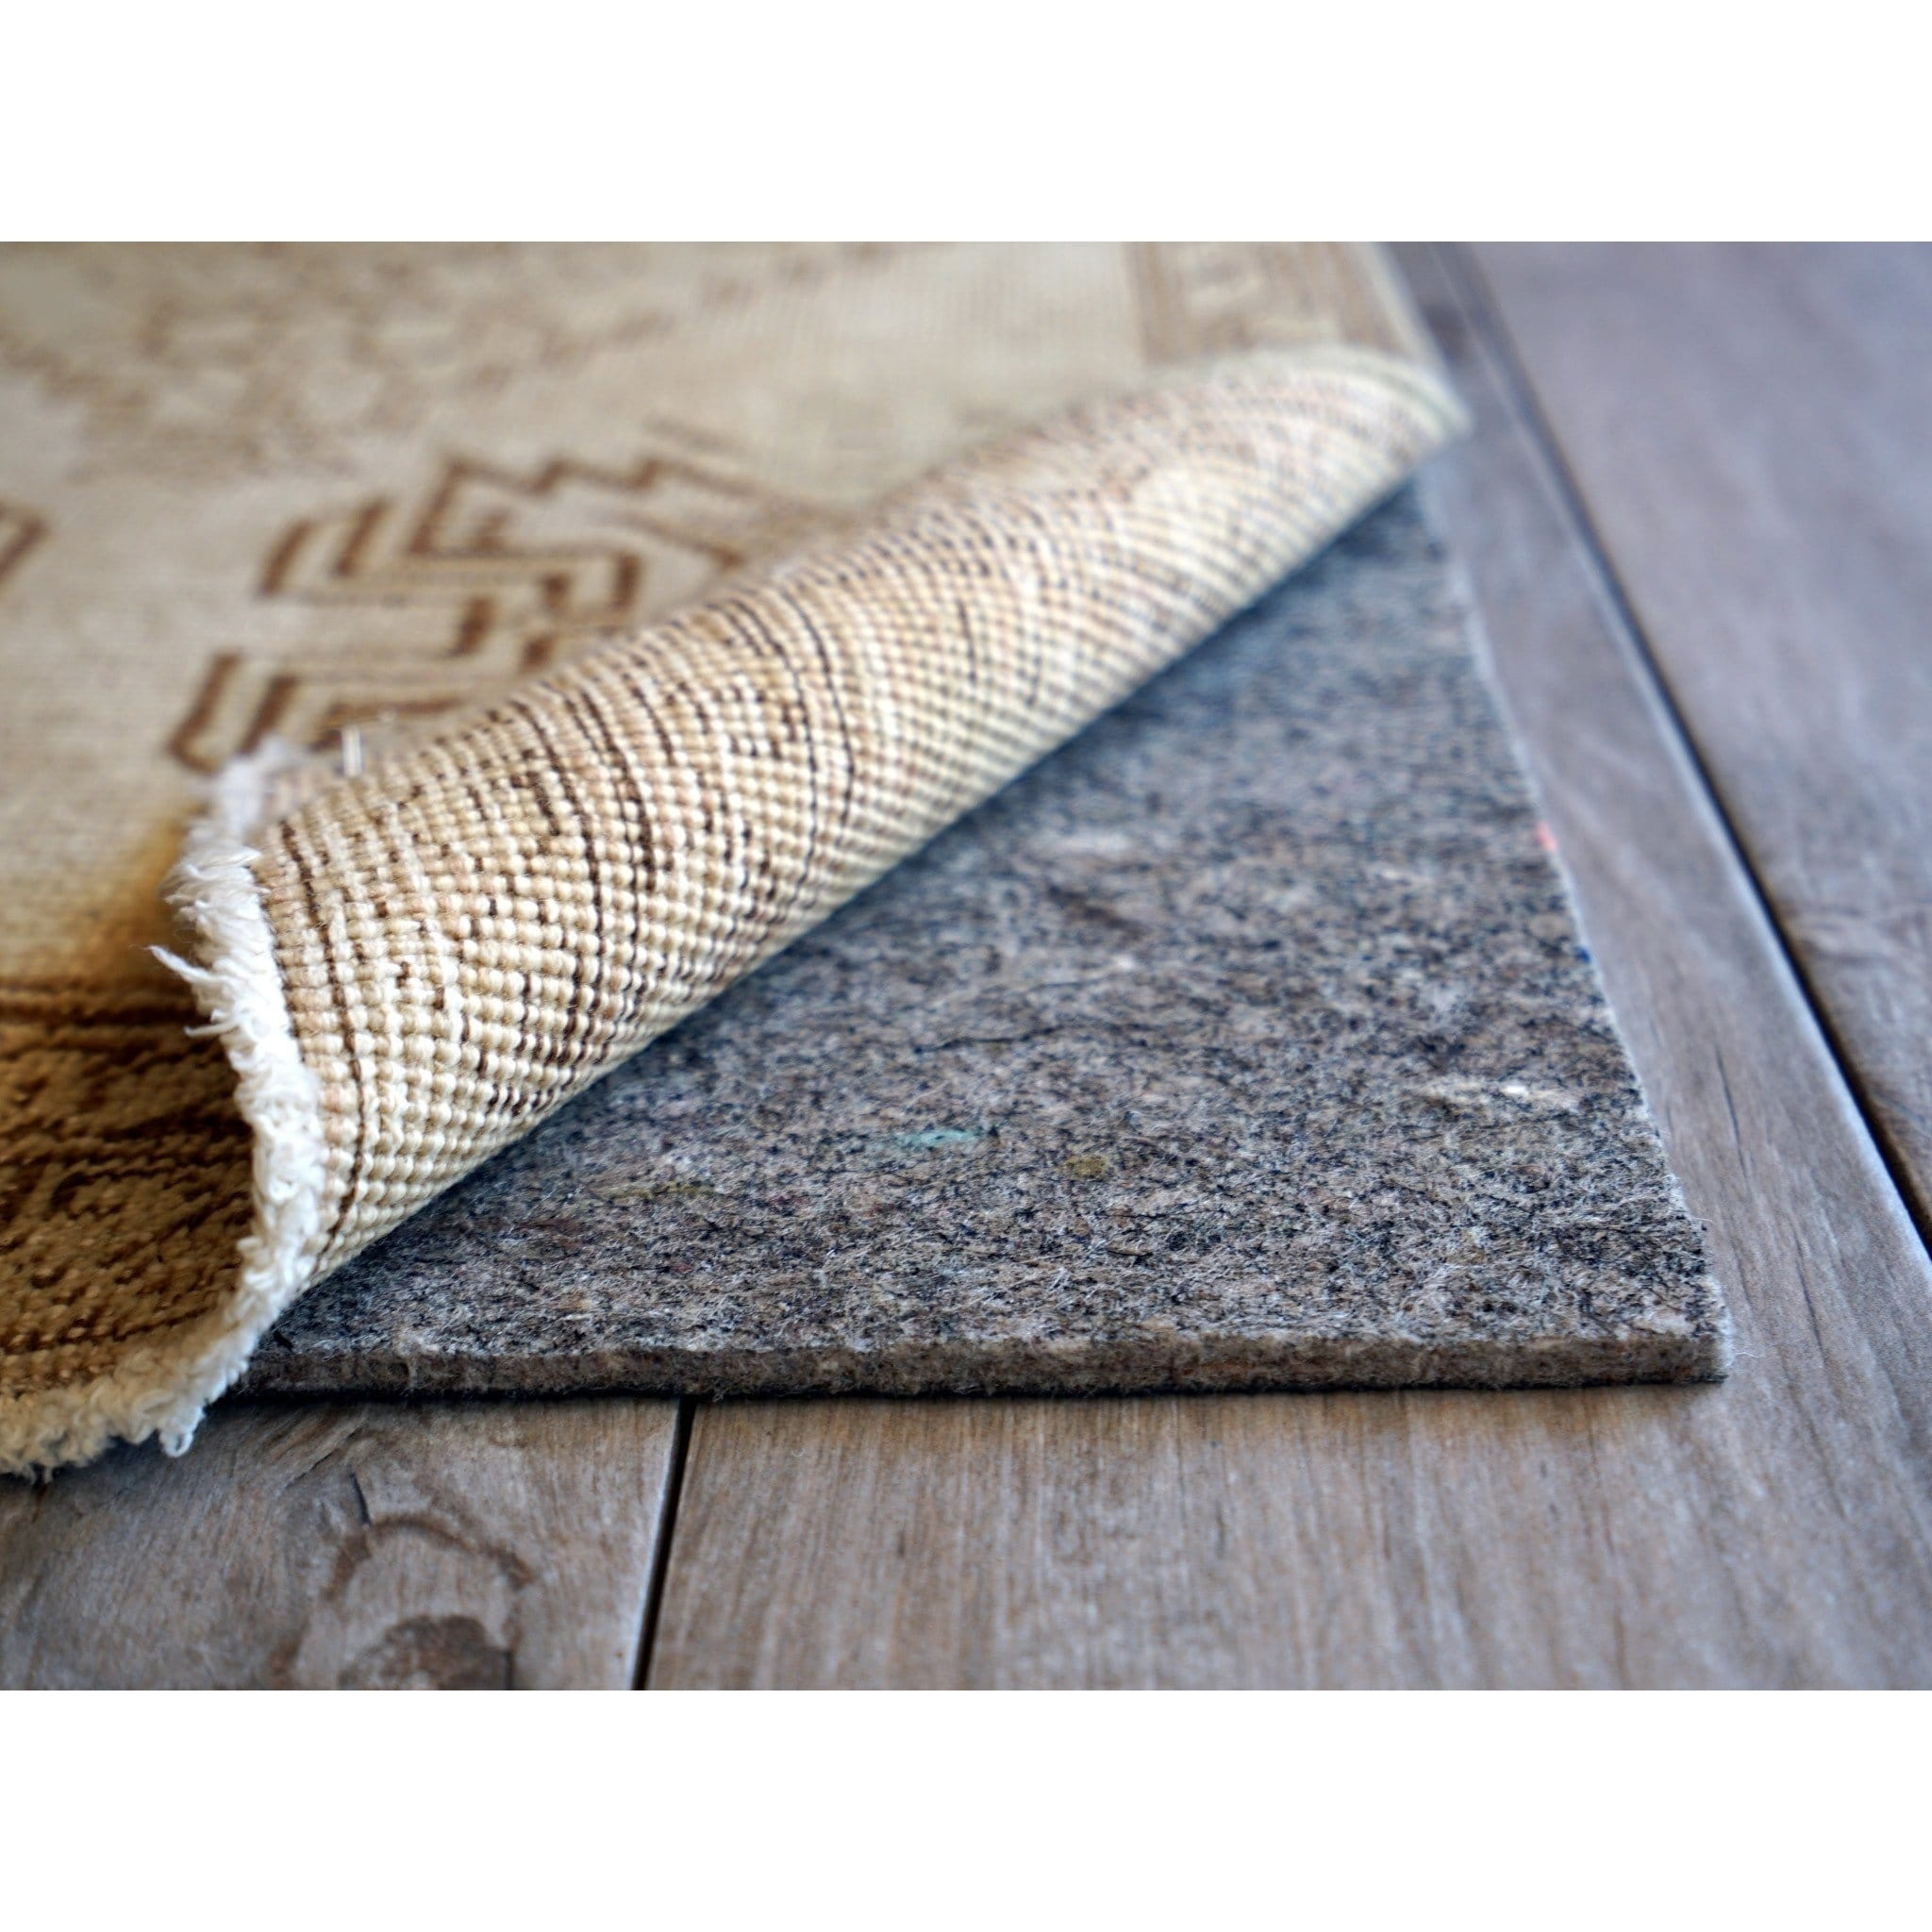 Cushgrip 1 8 Inch Non Slip Rug Pad 3 X 14 On Free Shipping Today 13397051